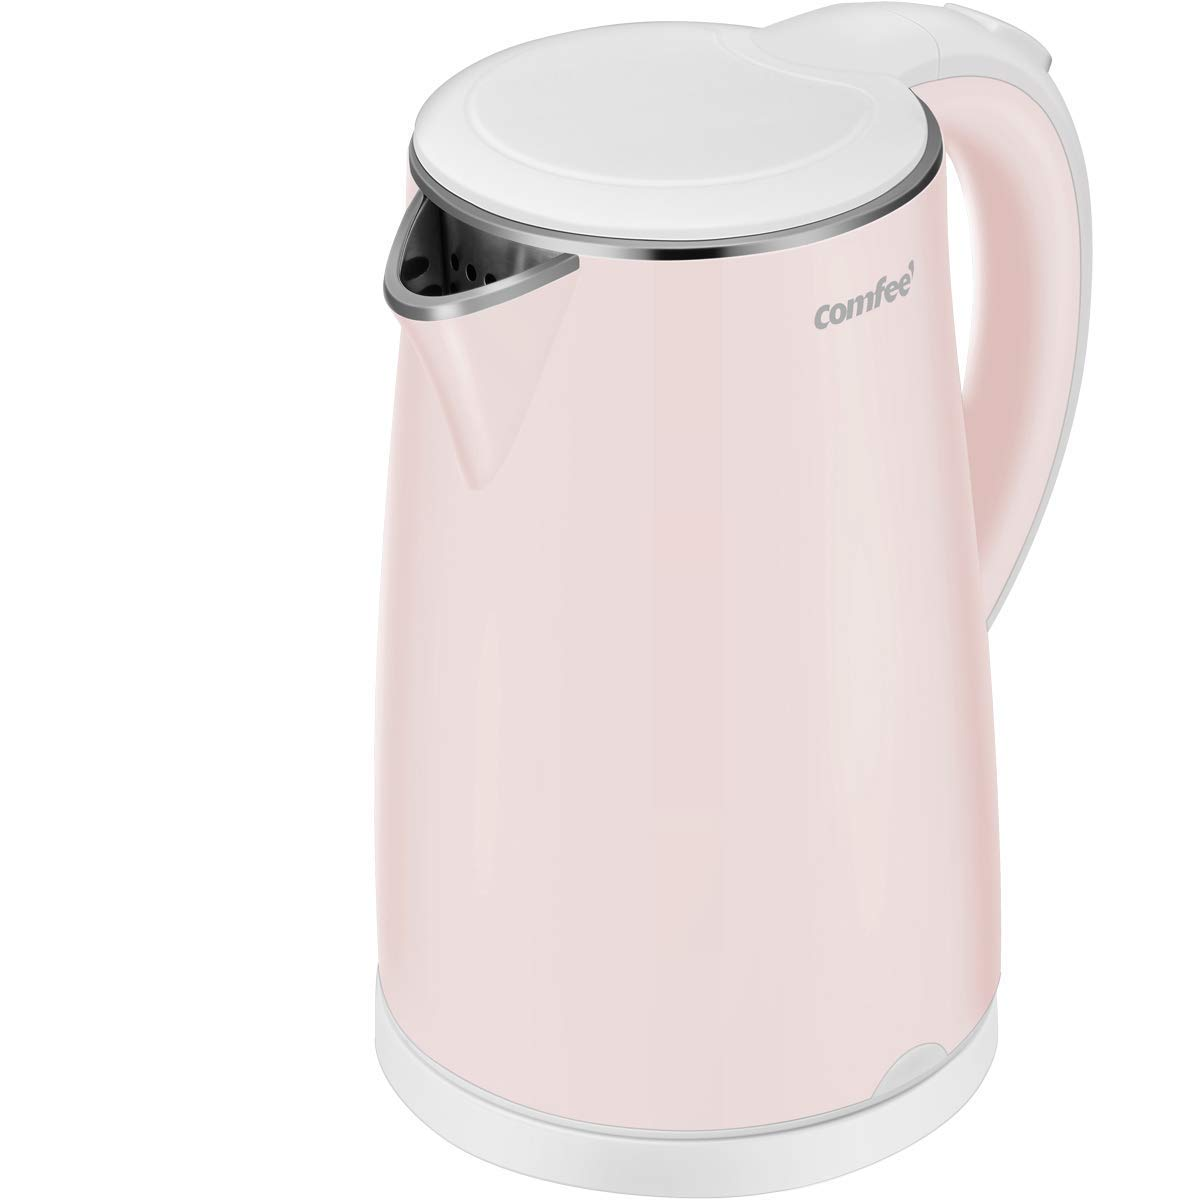 COMFEE' MK-HJ1705a1 Electric Kettle Teapot 1.7 Liter Fast Water Heater Boiler 1500W BPA-Free, Quiet Boil & Cool Touch Series, Auto Shut-Off and Boil Dry Protection, 1.7L, Baby Pink by COMFEE' (Image #1)